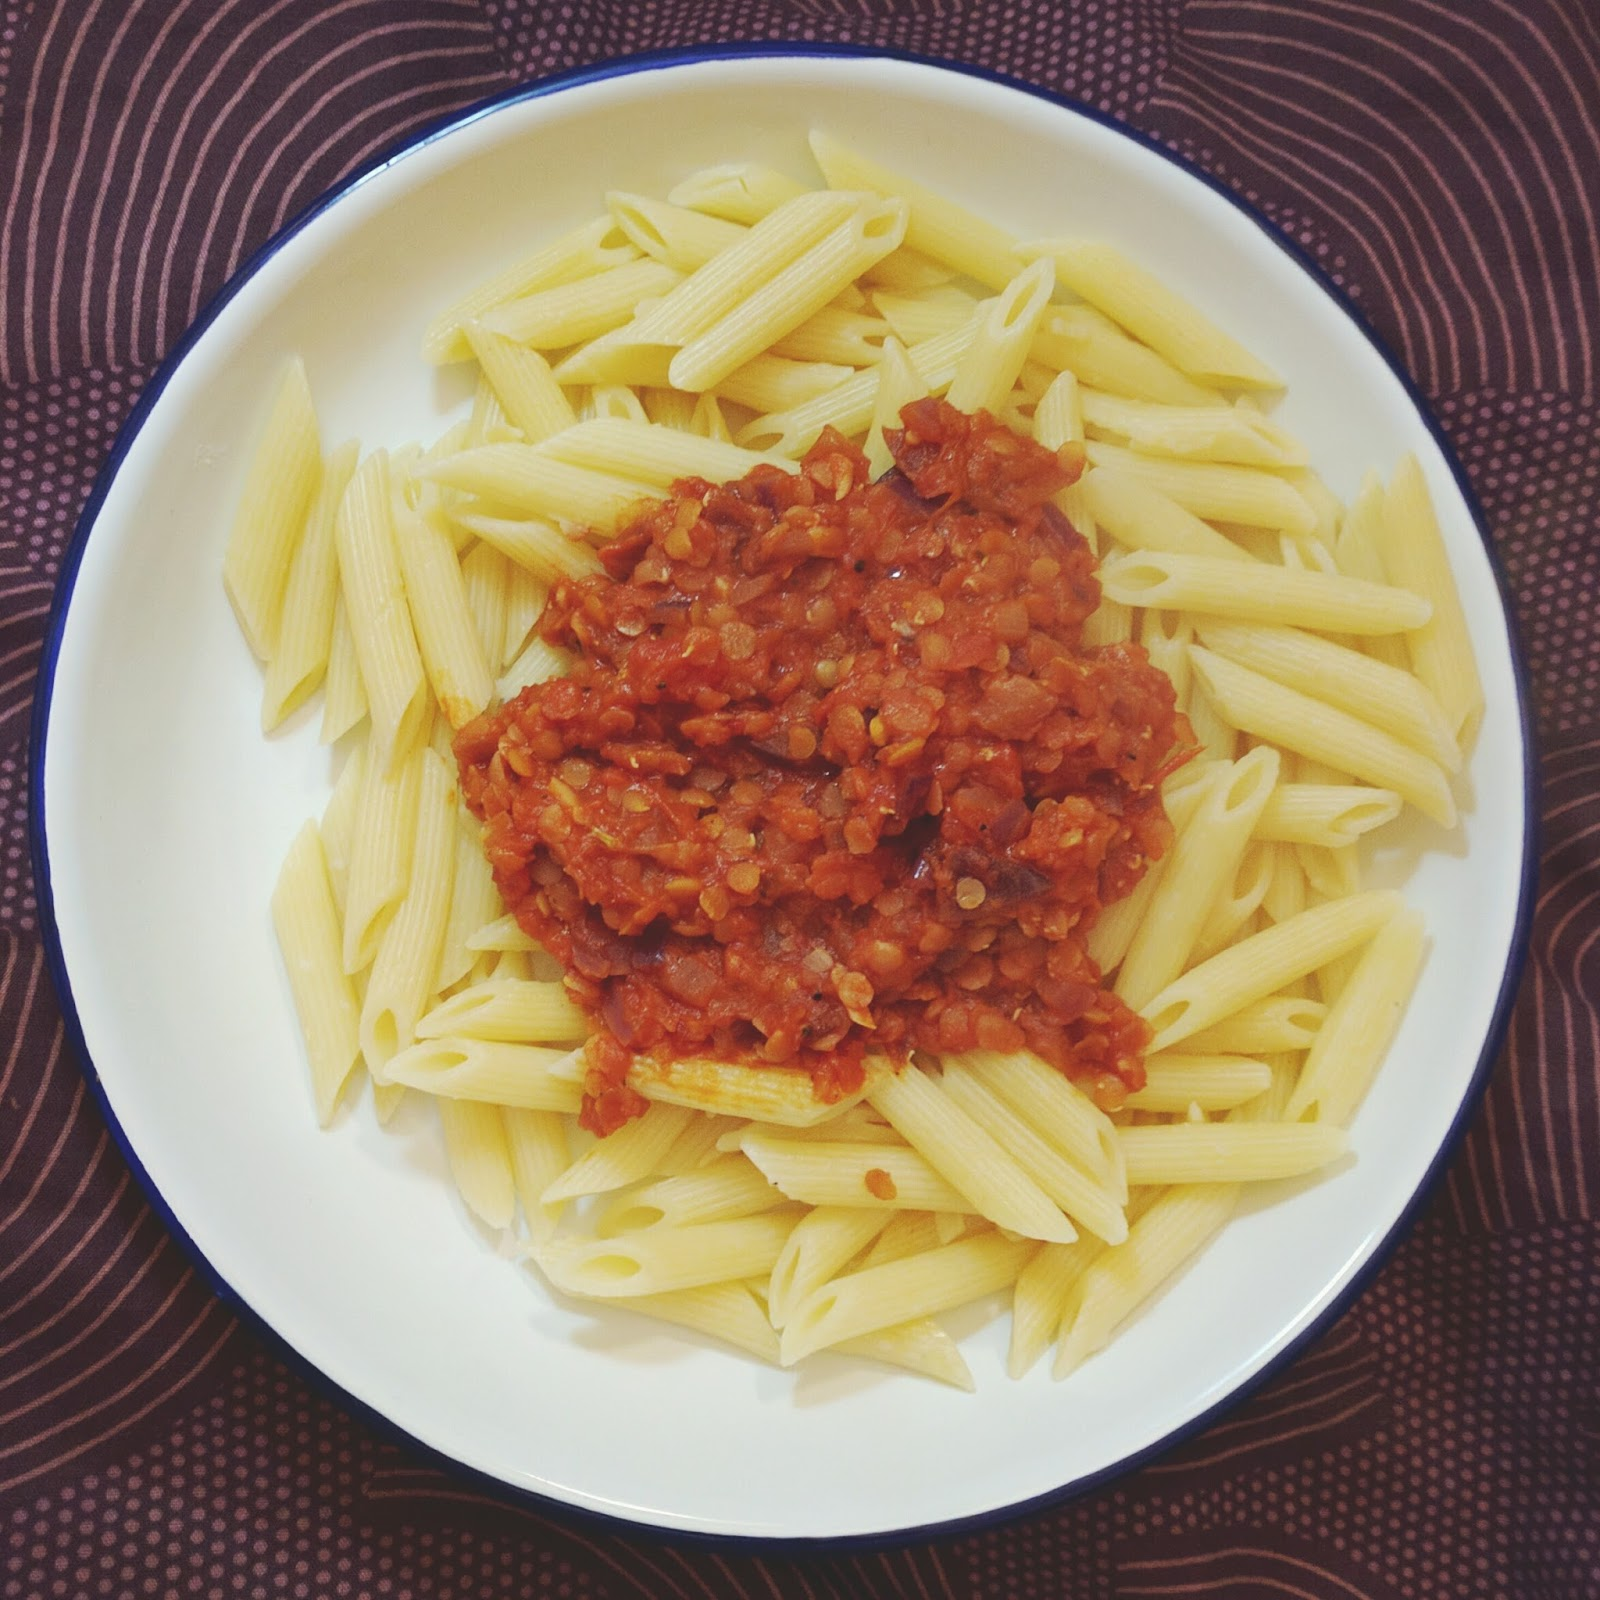 Homemade vegan bolognese